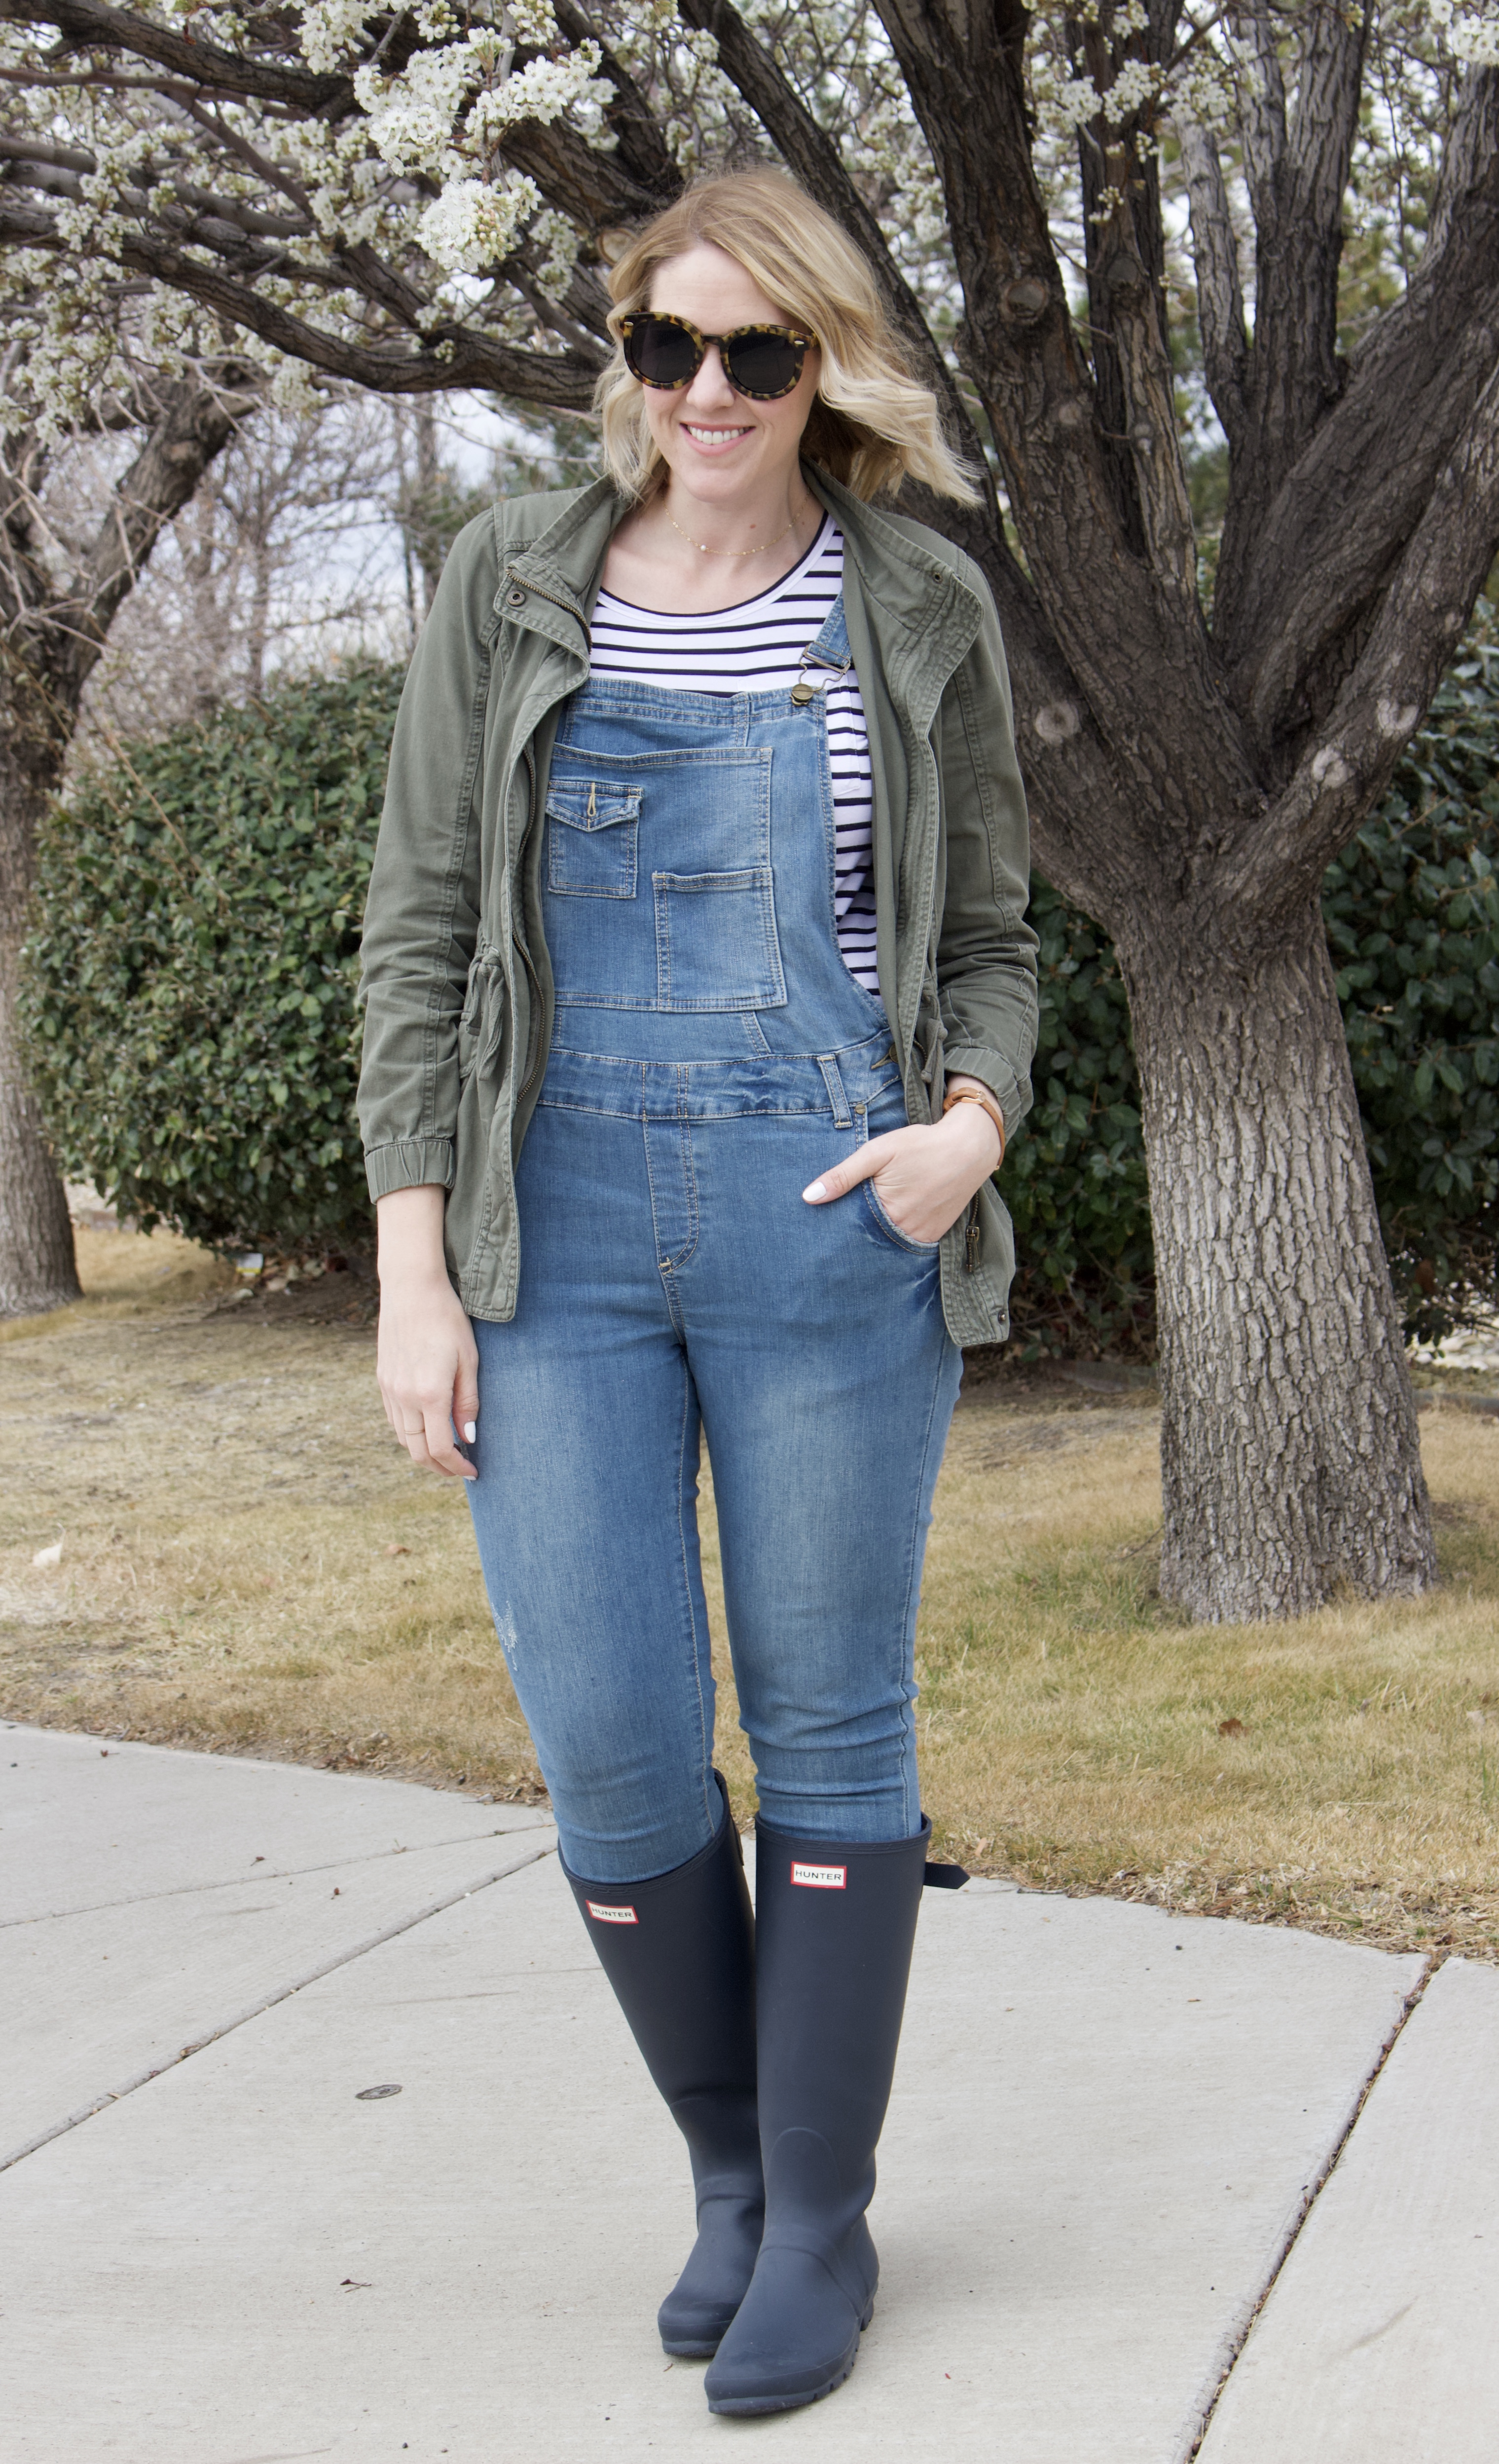 cute overalls outfit with hunter boots #momstyle #springstyle #overallsoutfit